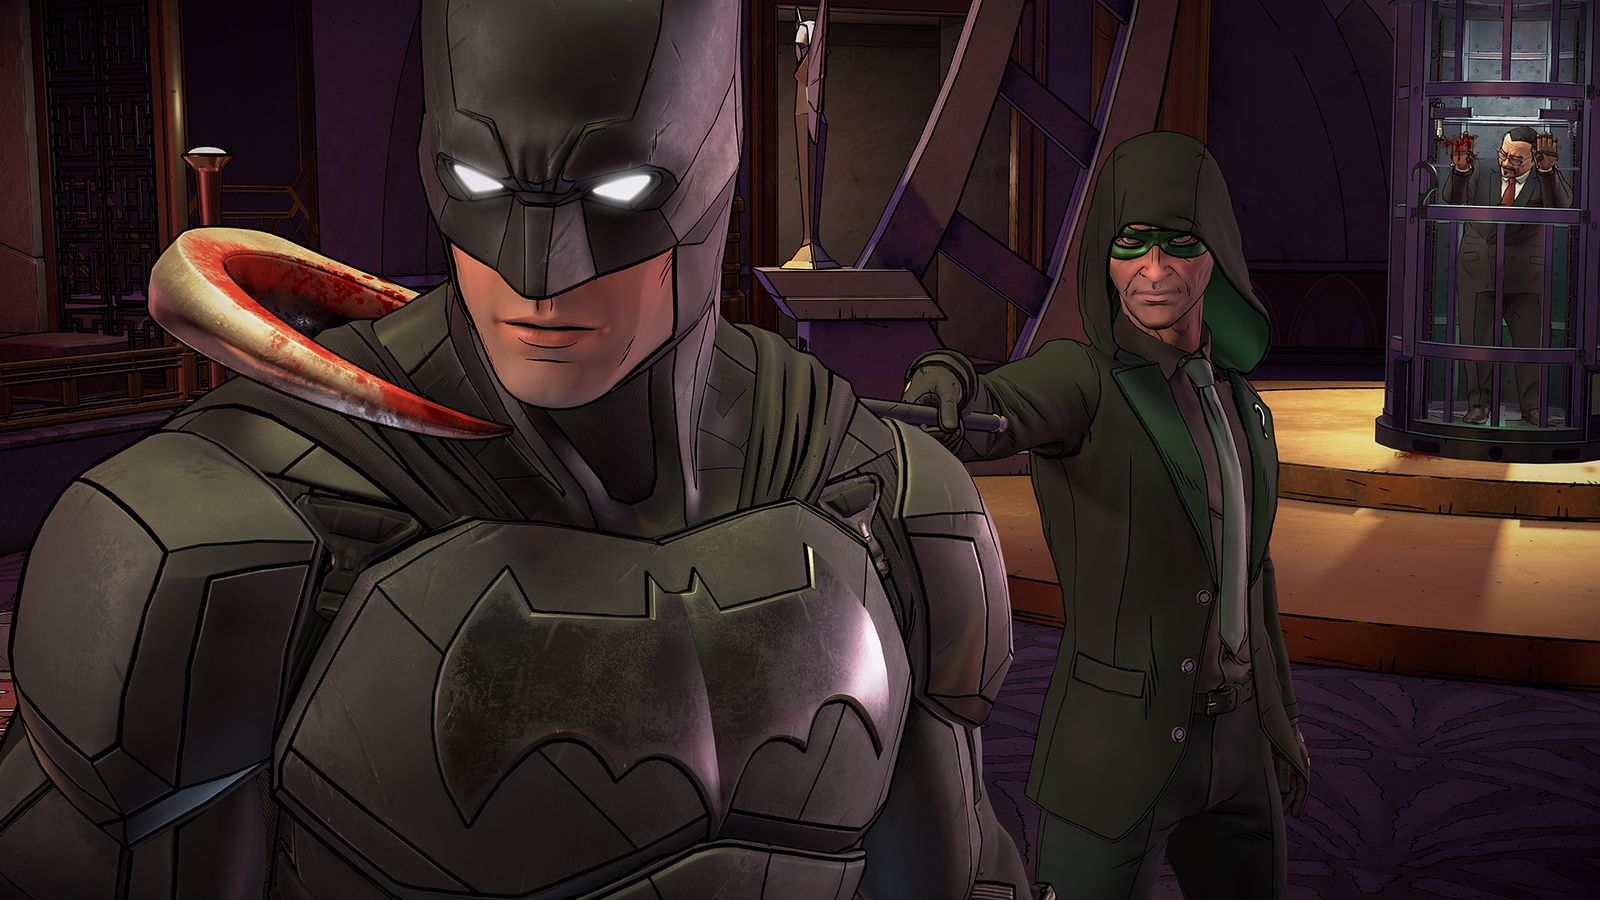 Telltale Games announces new seasons of Batman, Walking Dead, and The Wolf Among Us